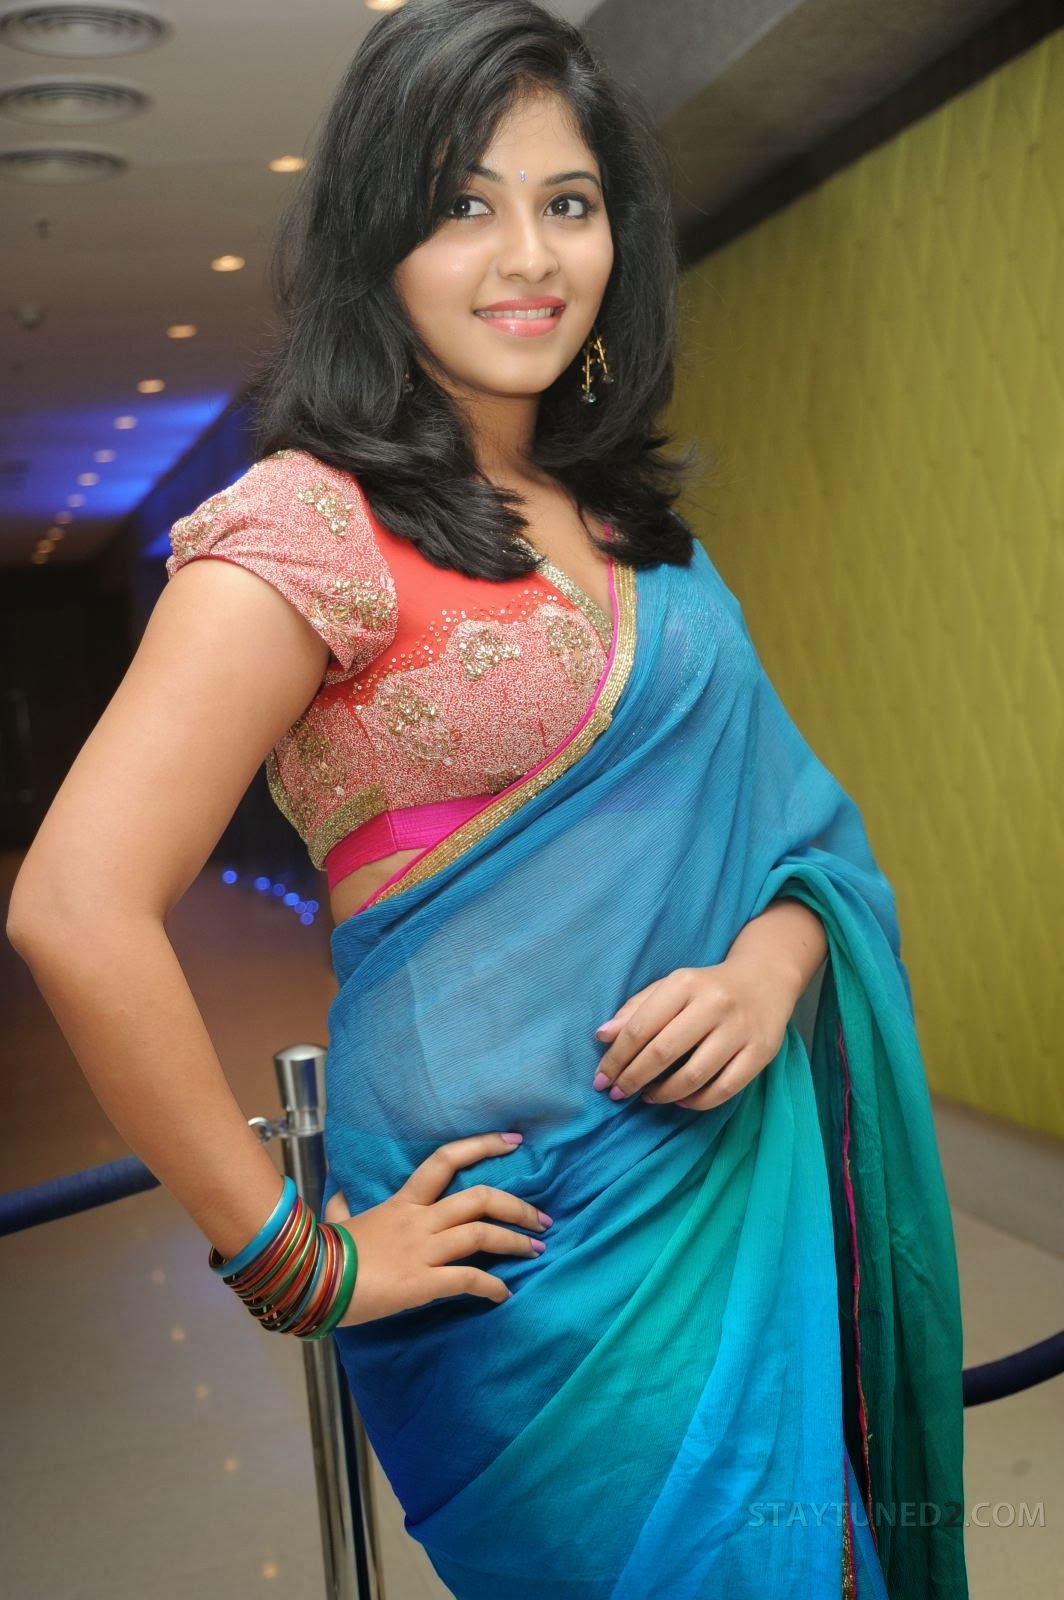 Anjali in saree at event